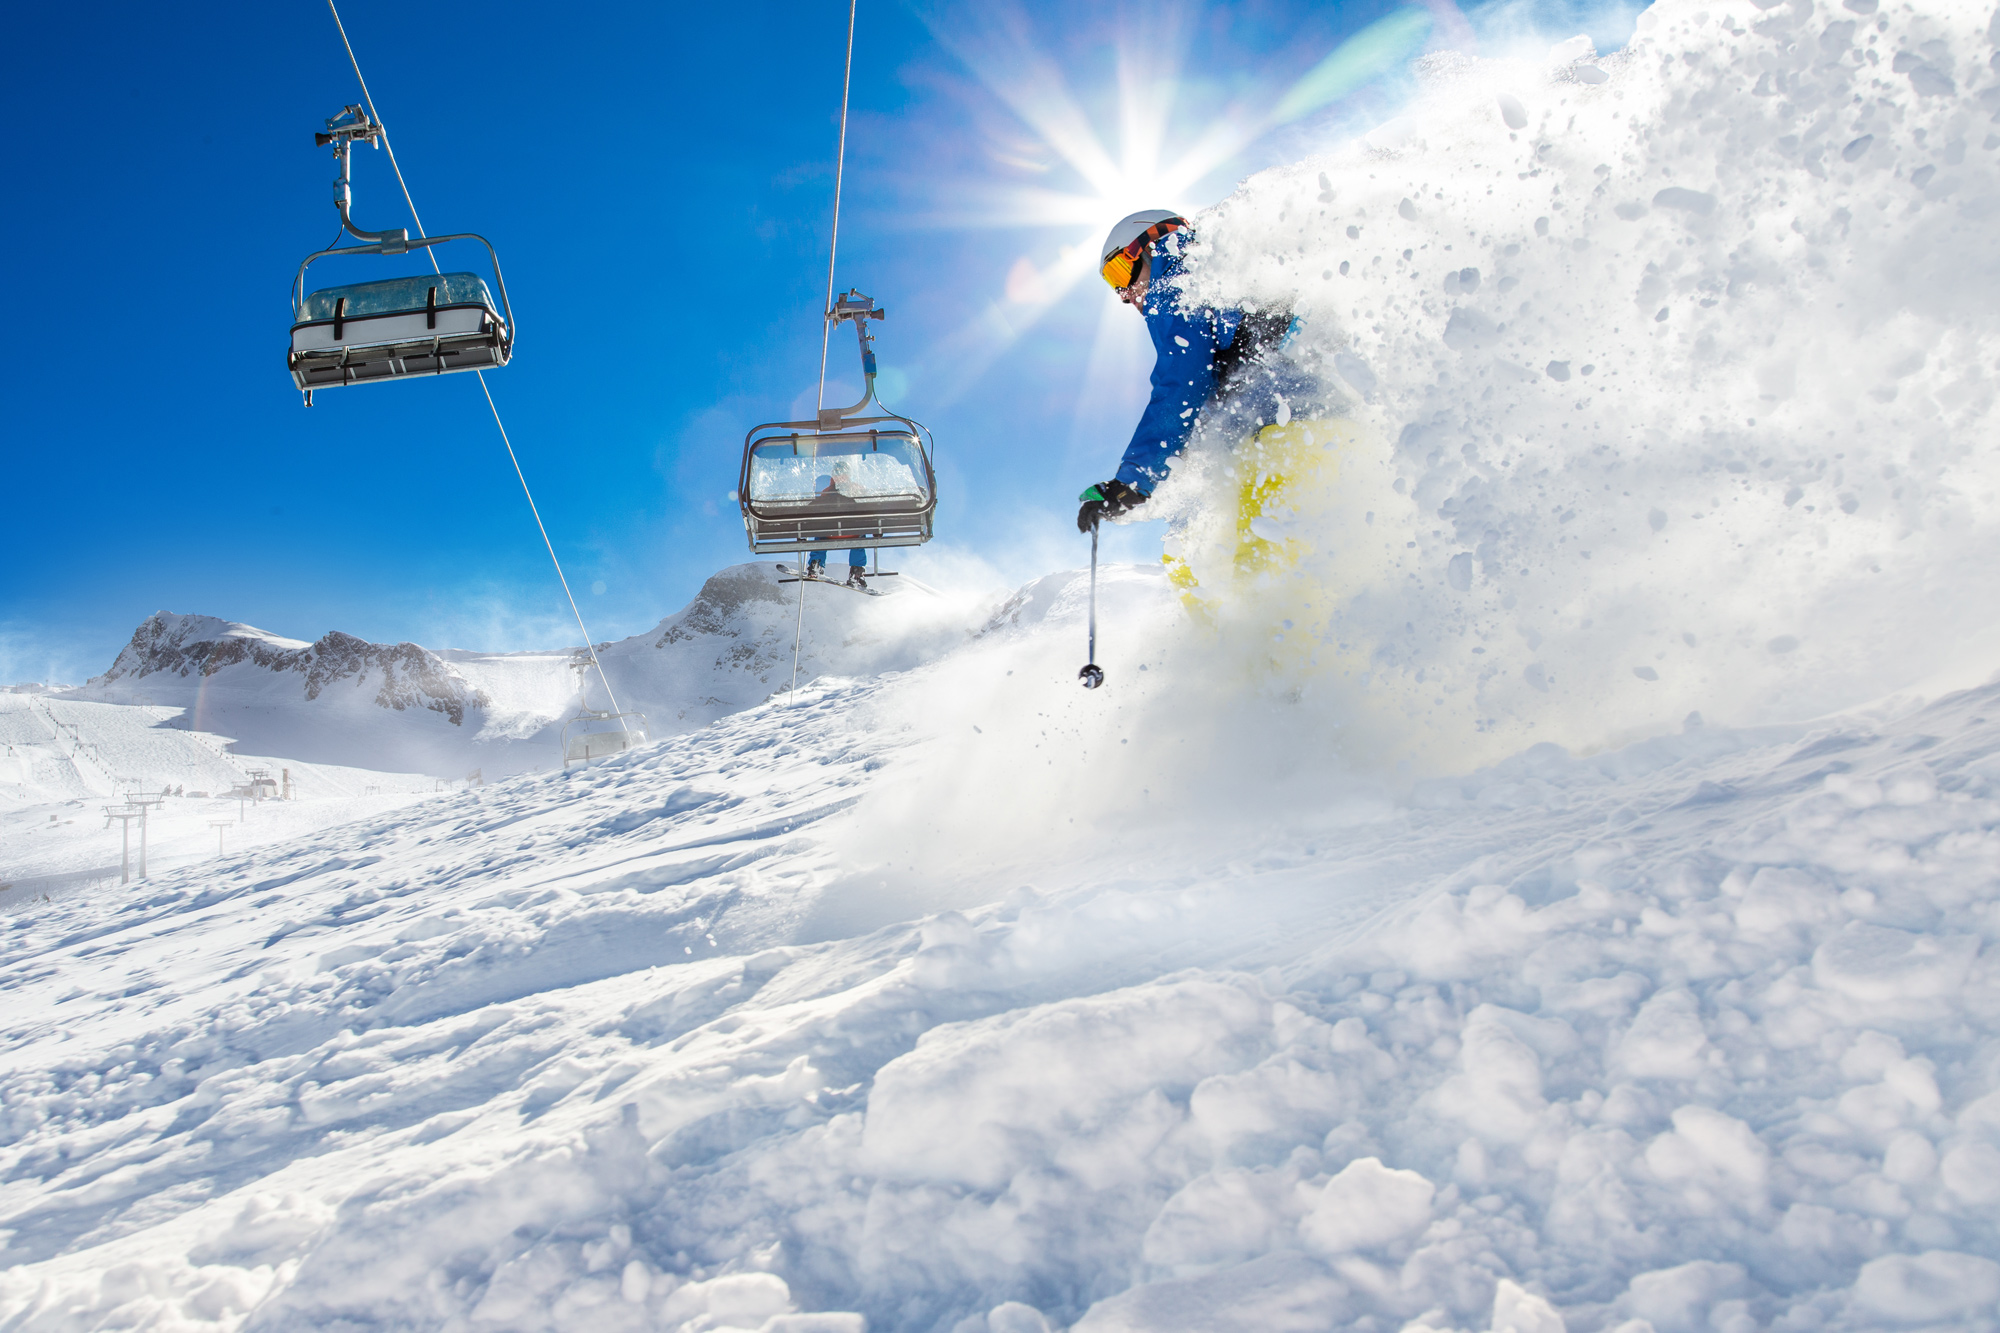 We have 11 tips and tricks that can save you money on lift tickets this season.